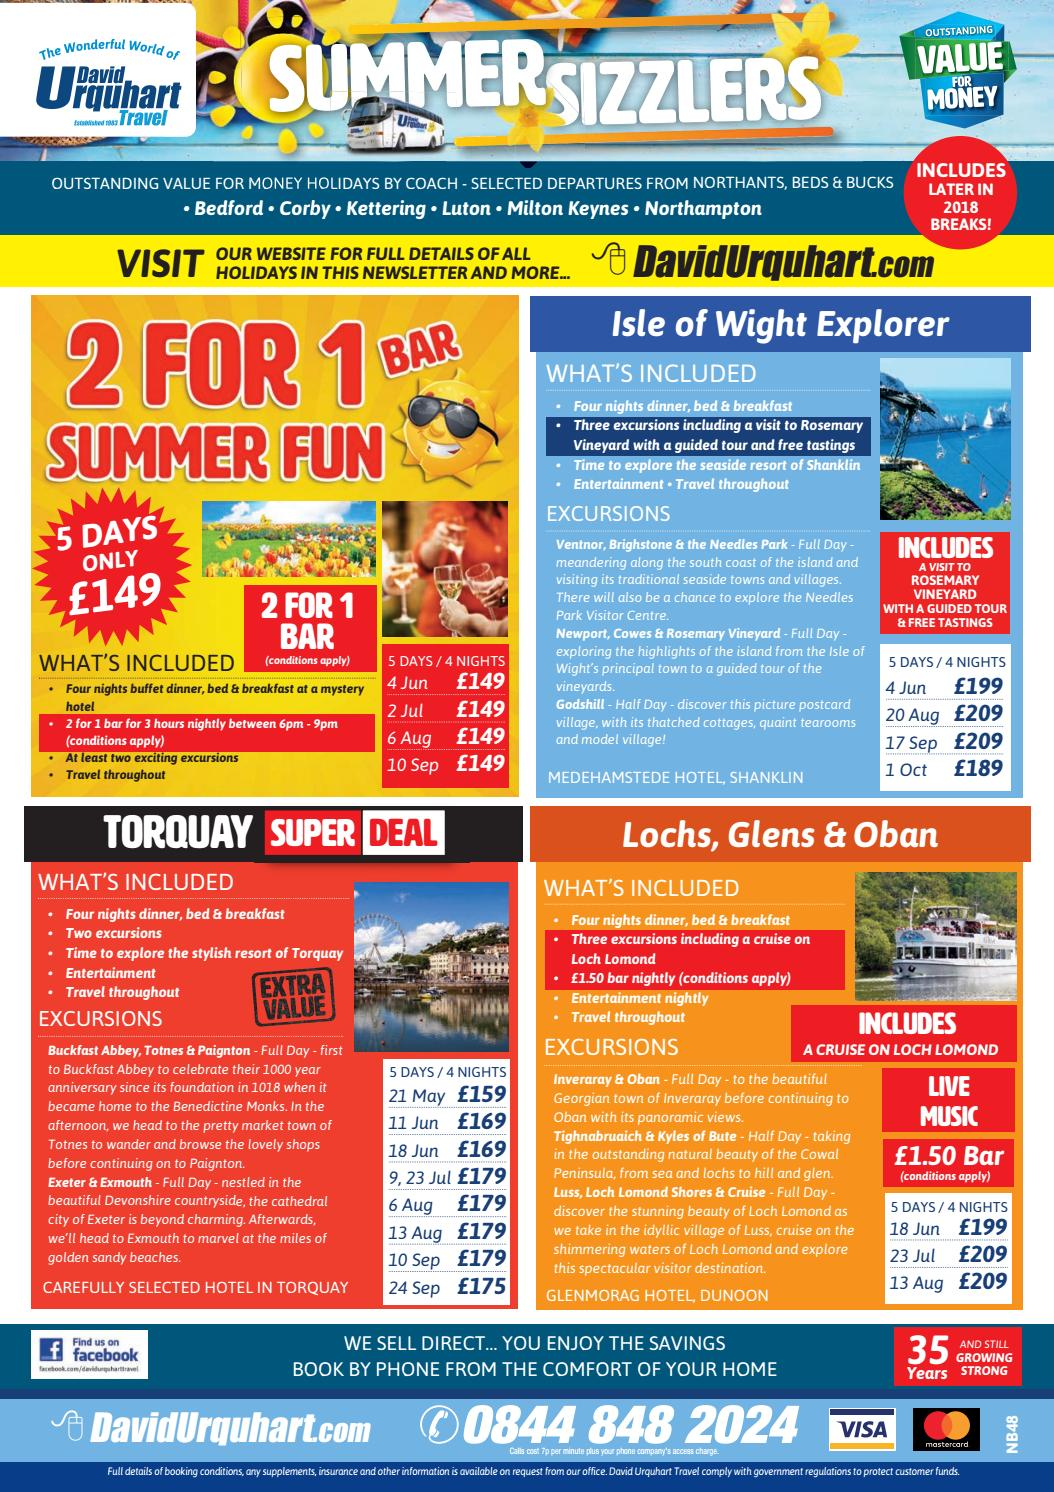 Bed And Breakfast Kettering Summer Sizzlers Northants Beds And Bucks By David